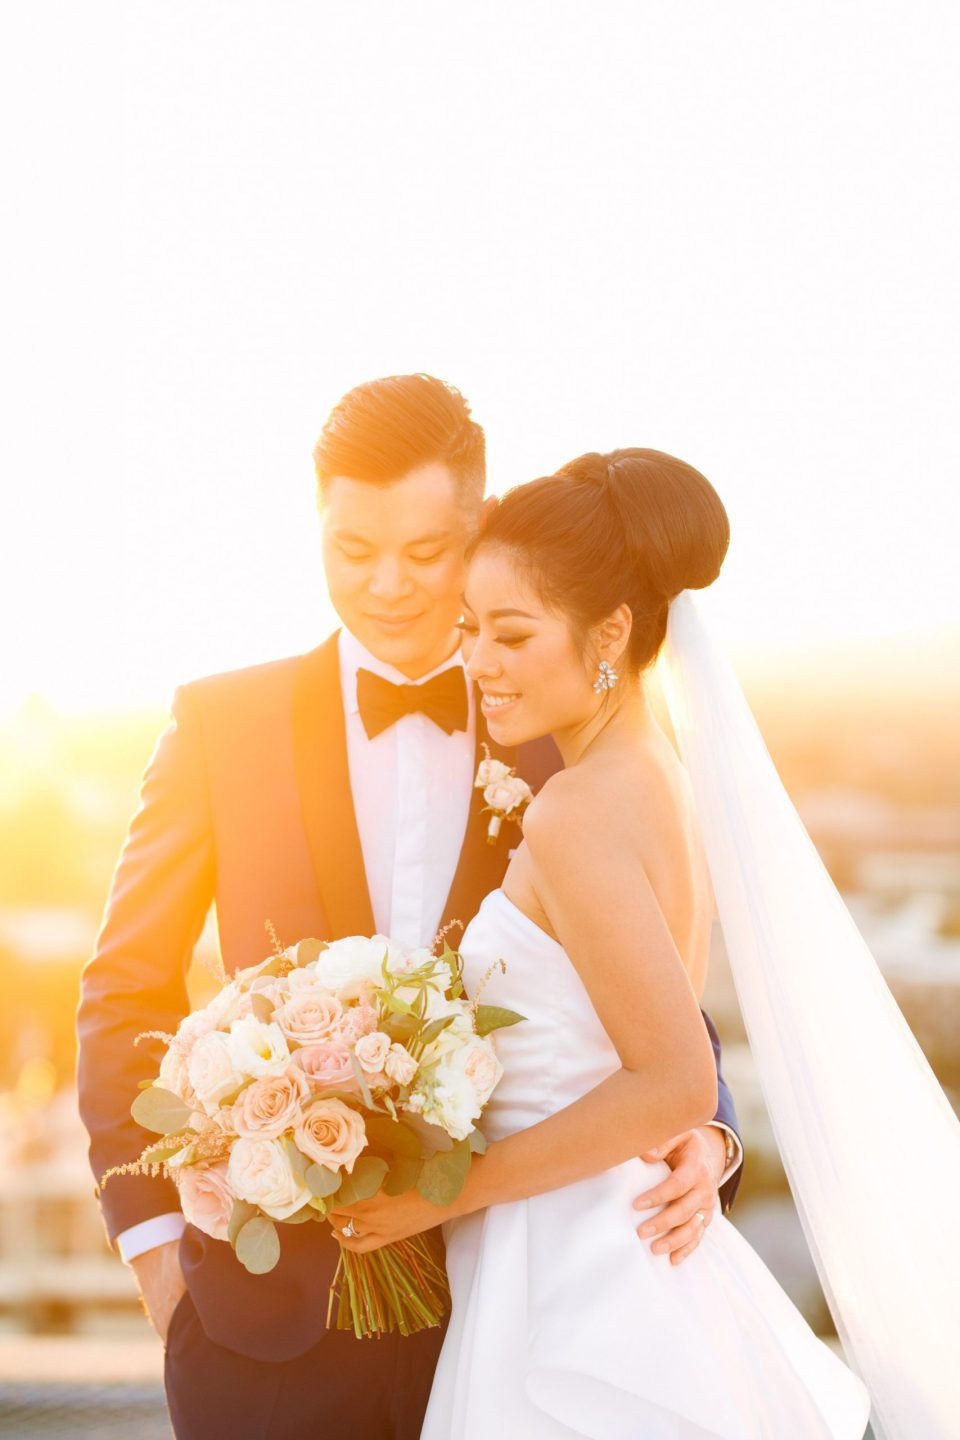 Classic wedding portrait at sunset by Mary Costa Photography